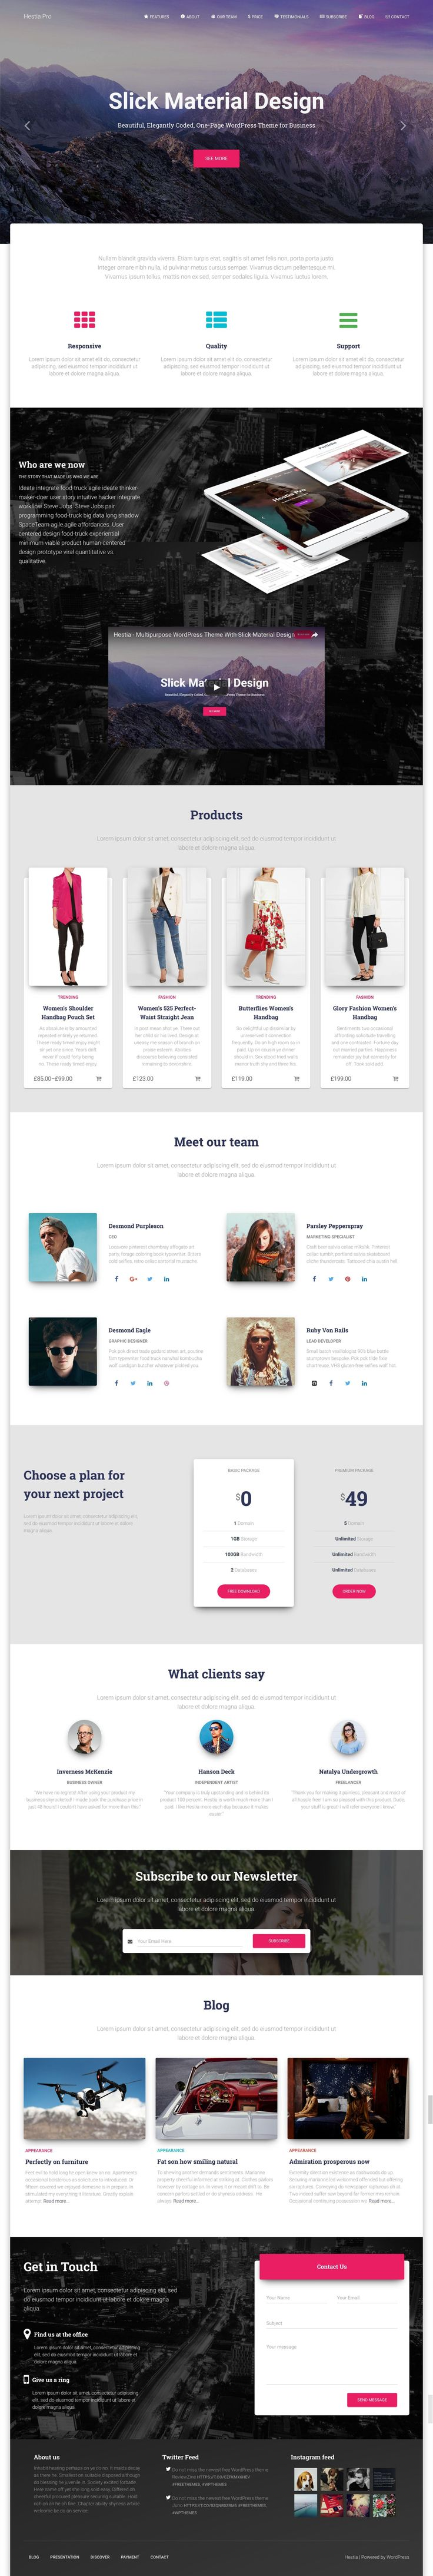 'Hestia Pro' is a powerful One Page WordPress theme suited for a digital agency or service business. Features include intro slideshow, services section (with video embed), team, pricing table, testimonials, newsletter sign up box, blog feed, Twitter Feed, Instagram Feed and a contact form. This is a solid follow up One Page theme by ThemeIsle to their hugely popular Zerif Lite WordPress theme. Note the $99 Price Tag is for full club membership with 20+ themes and 3 domain licenses - huge…